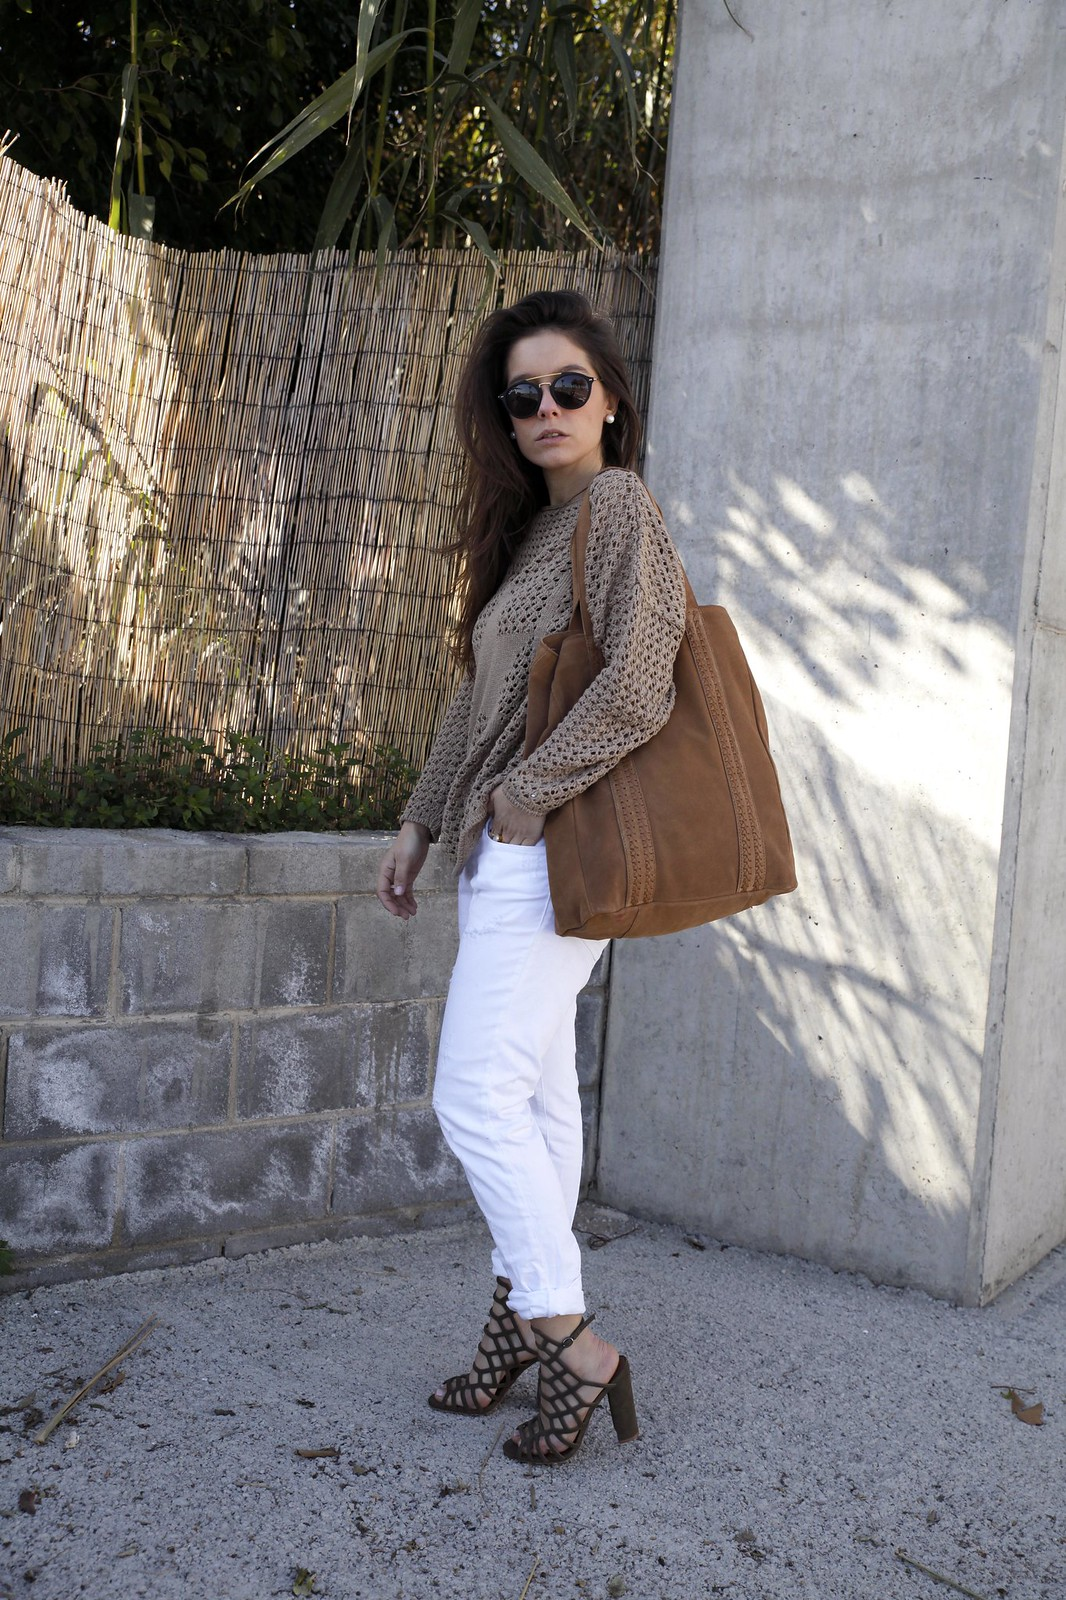 06_SPRING_NEUTRAL_OUTFIT_STREET_STYLE_FASHION_BLOGGER_INFLUENCER_BARCELONA_THEGUESTGIRL